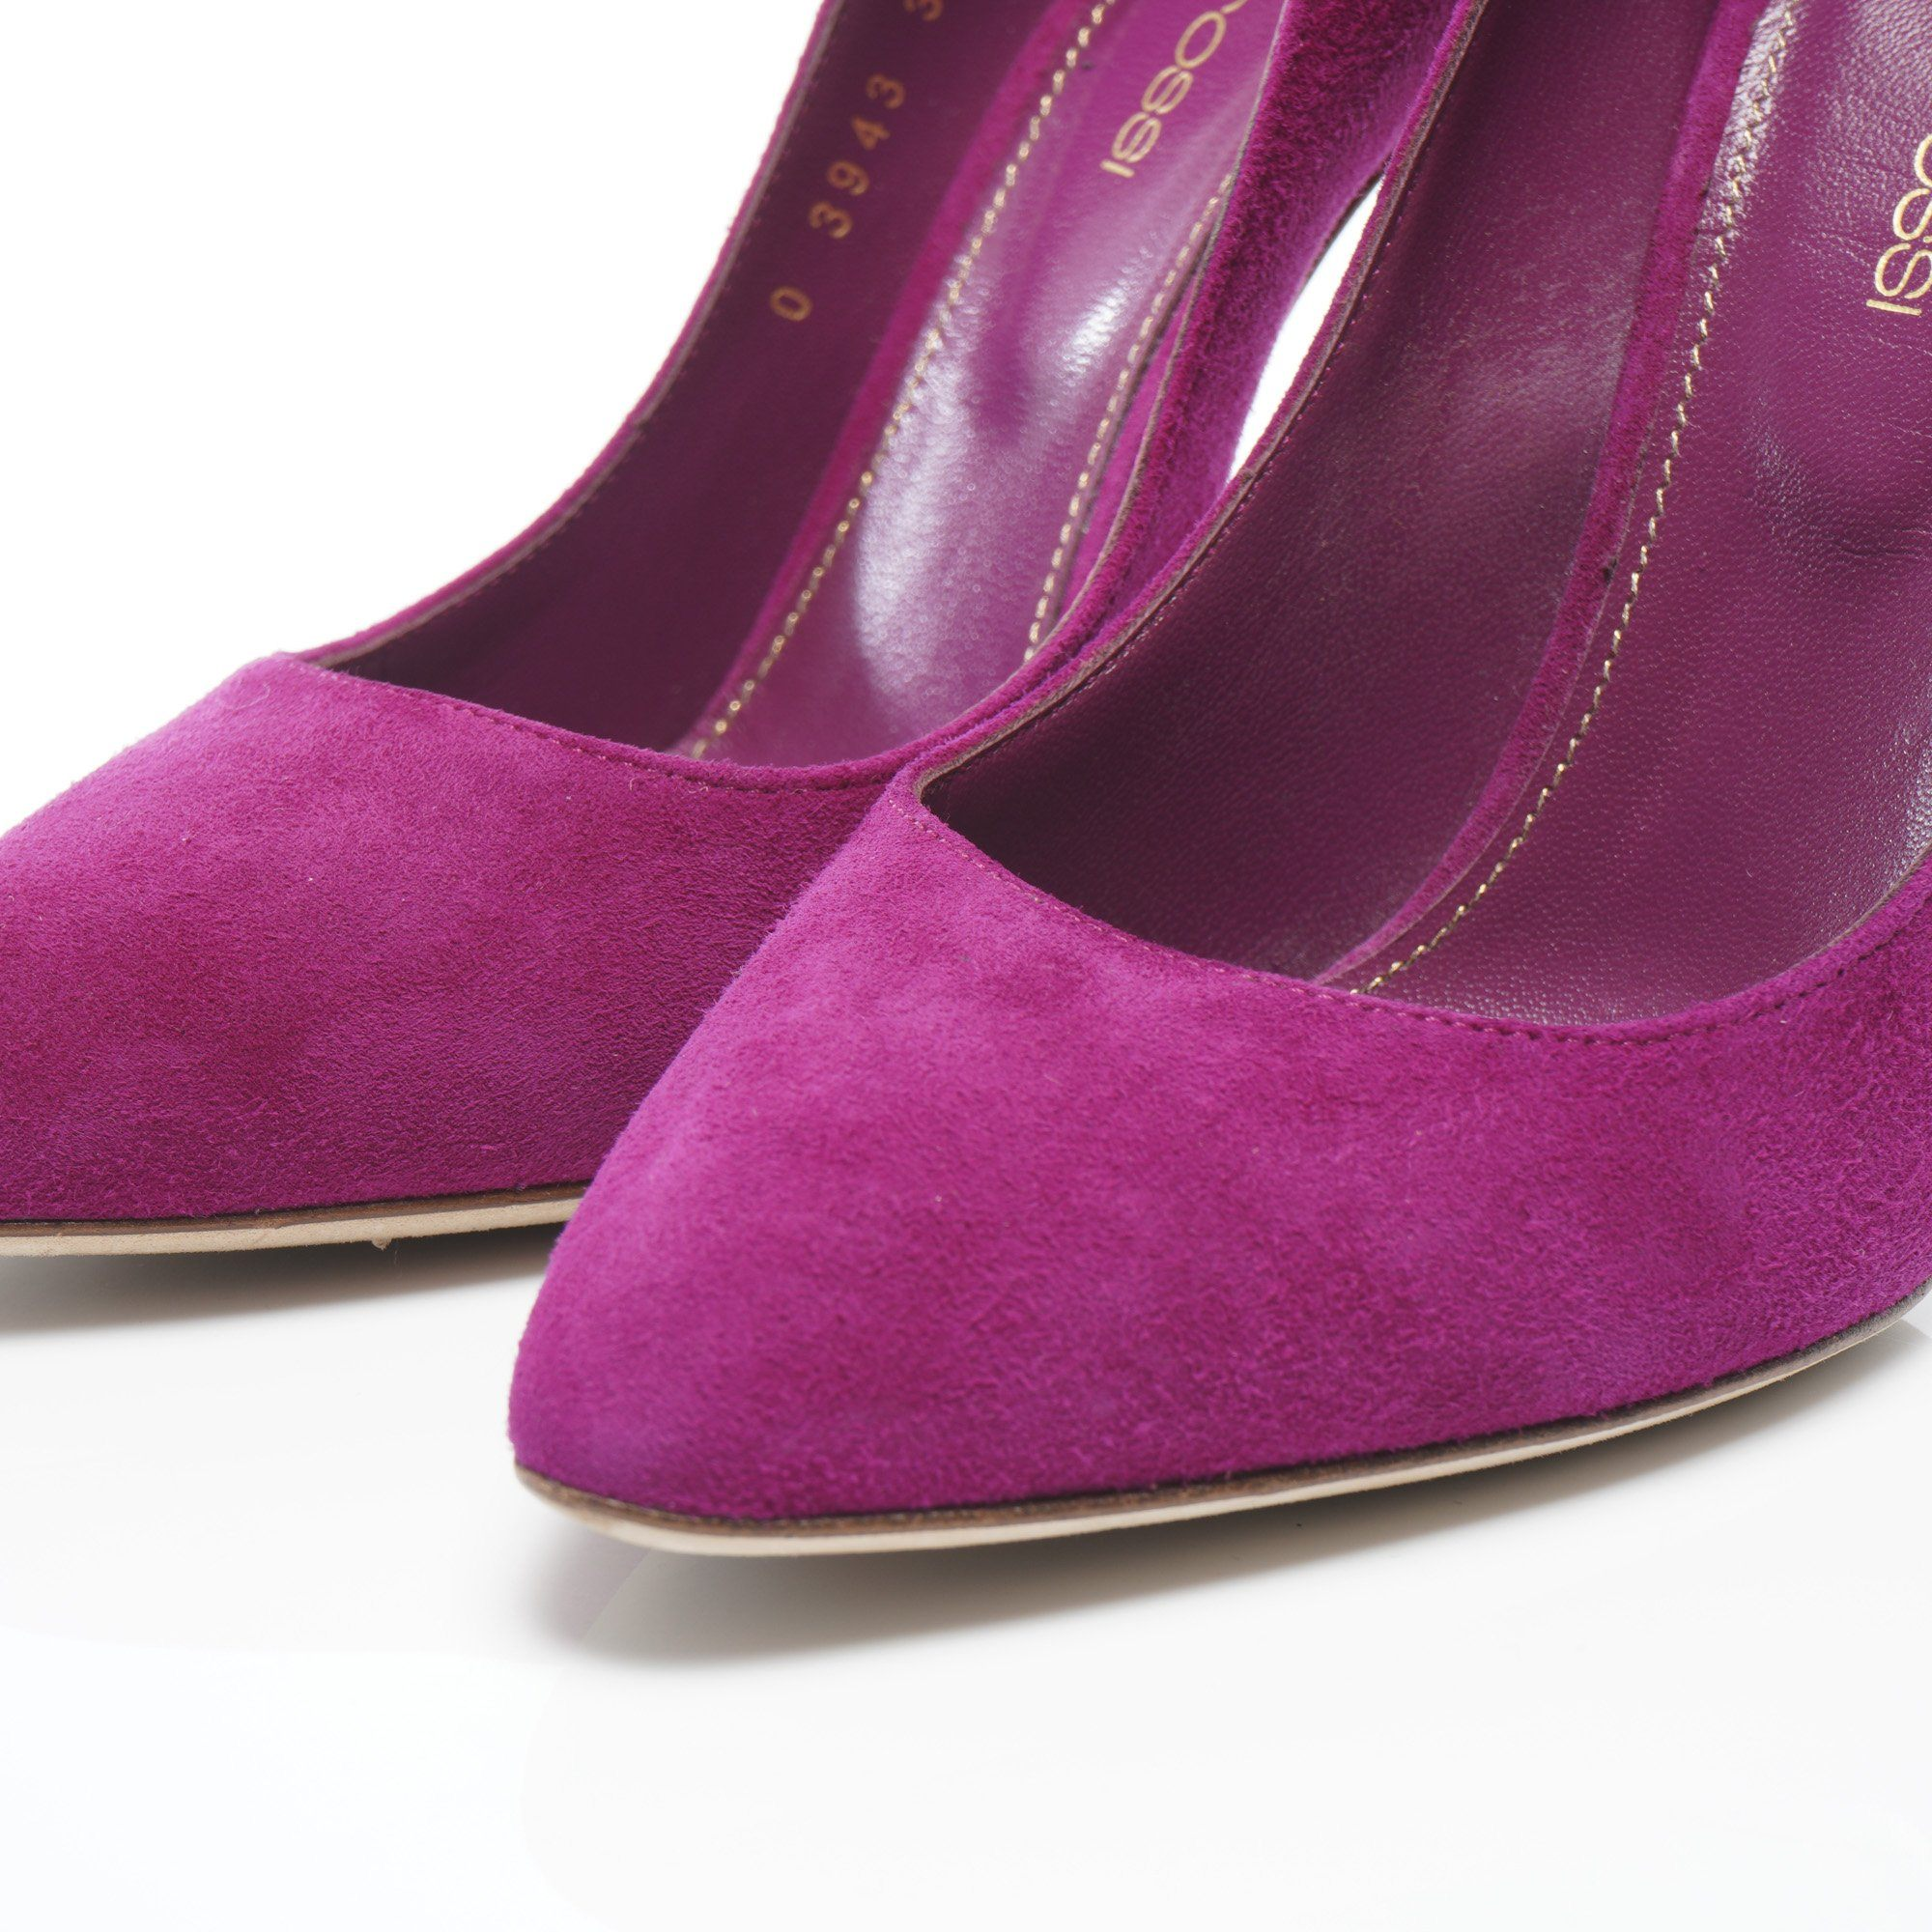 Sergio Rossi Purple Suede Pointed Shoes